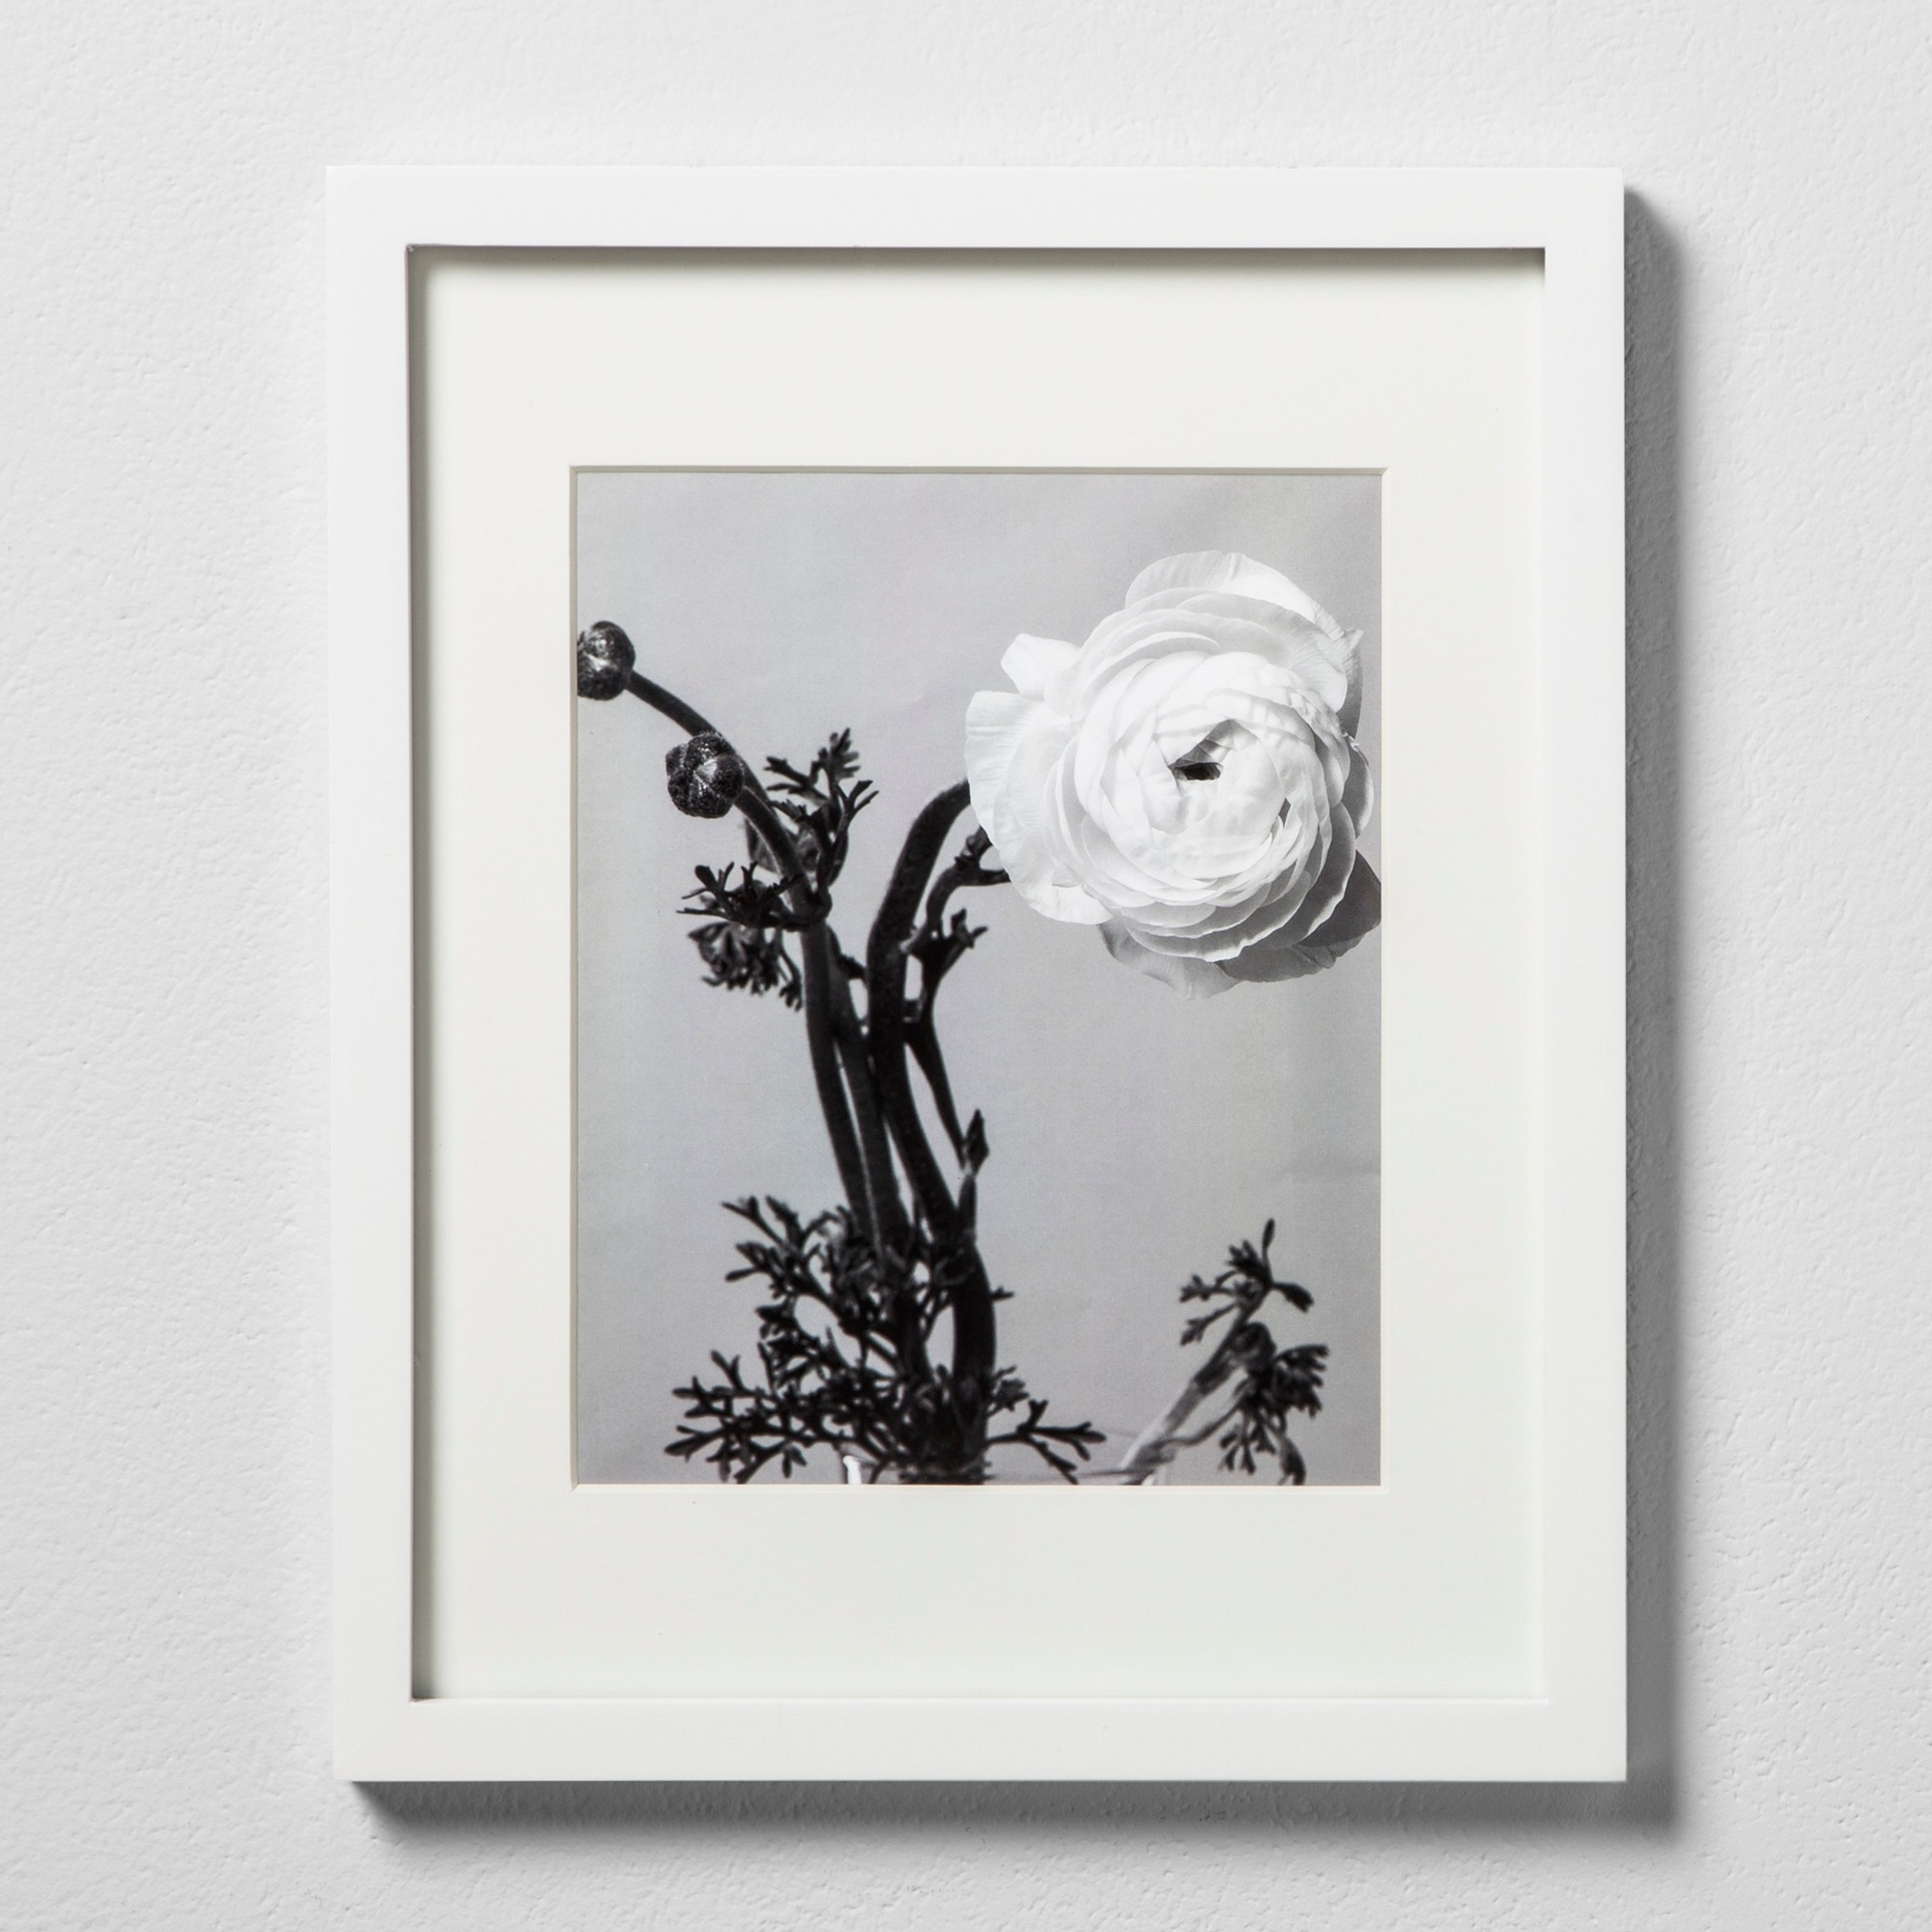 '8'' x 10'' Single Picture Gallery Frame White - Made By Design'